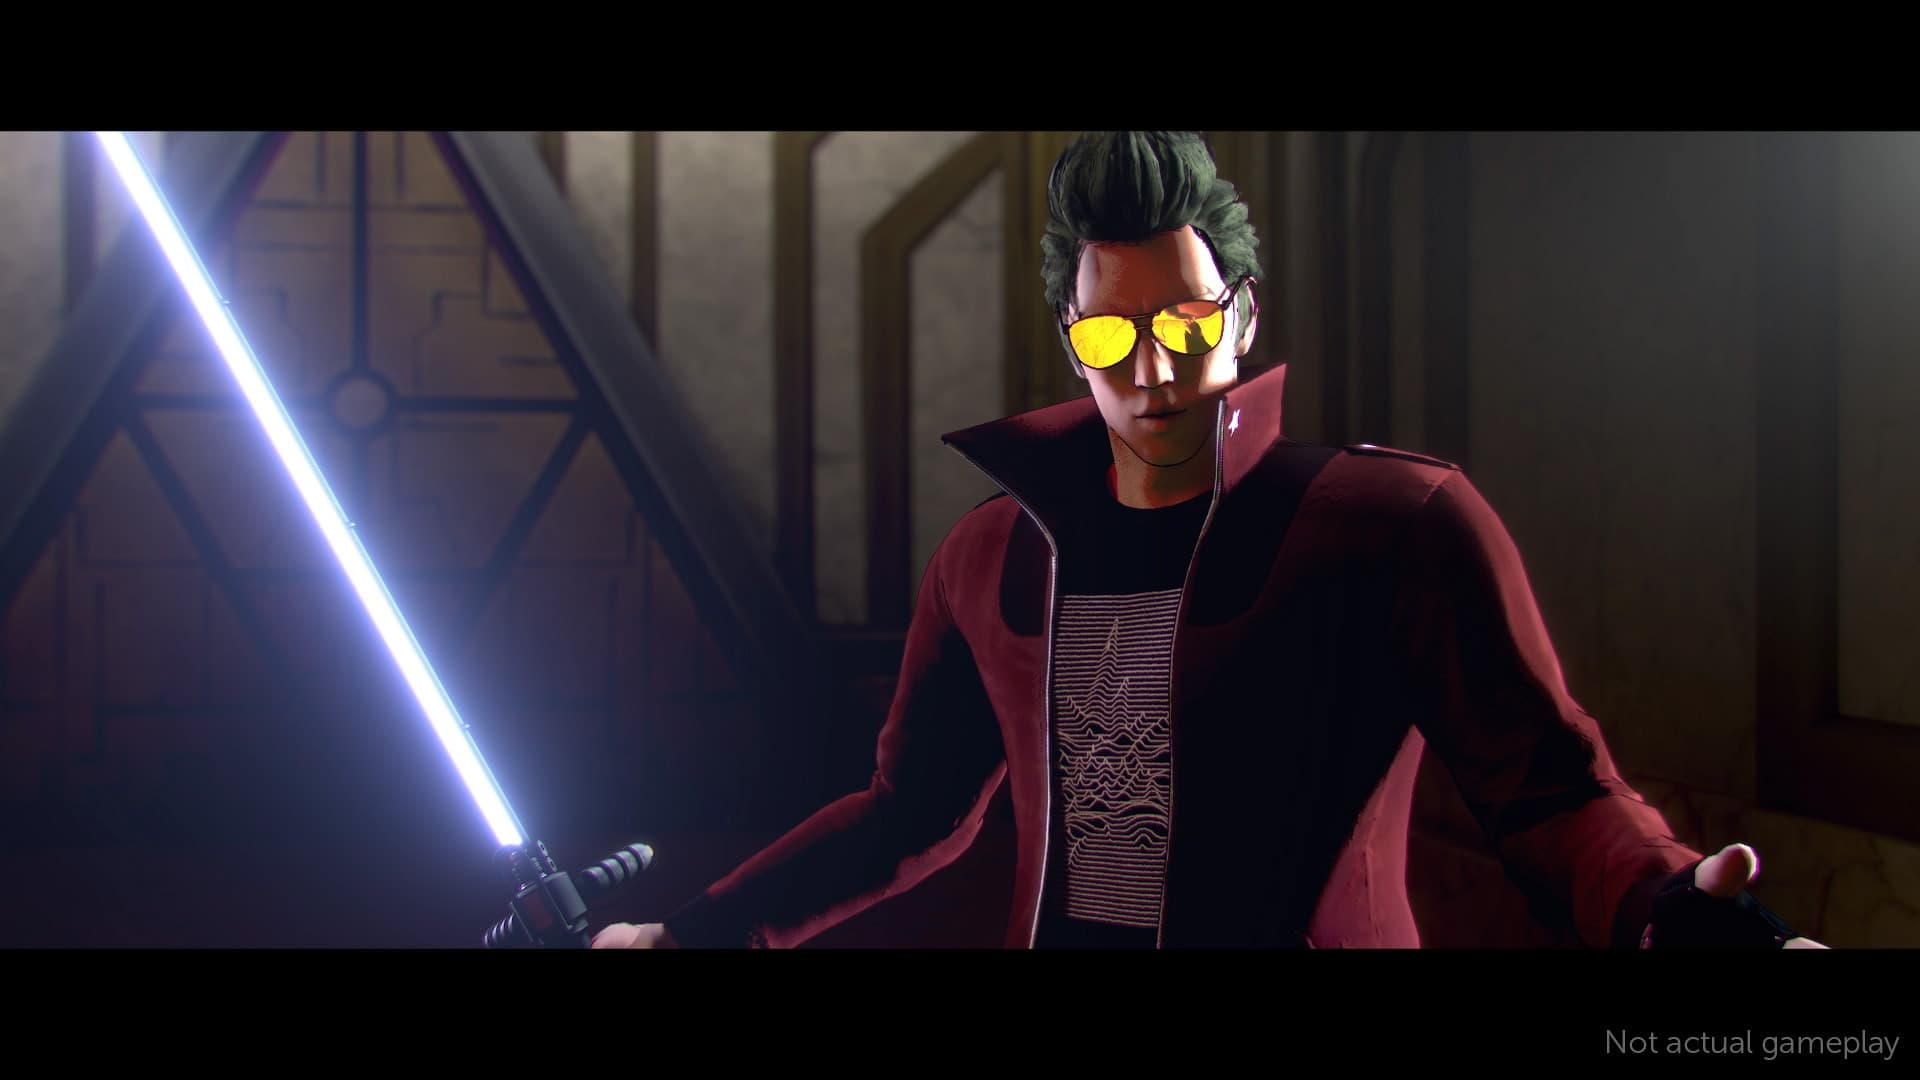 Suda51 says he's wanted to make No More Heroes 3 for awhile, Travis Strikes Again sales met expectations